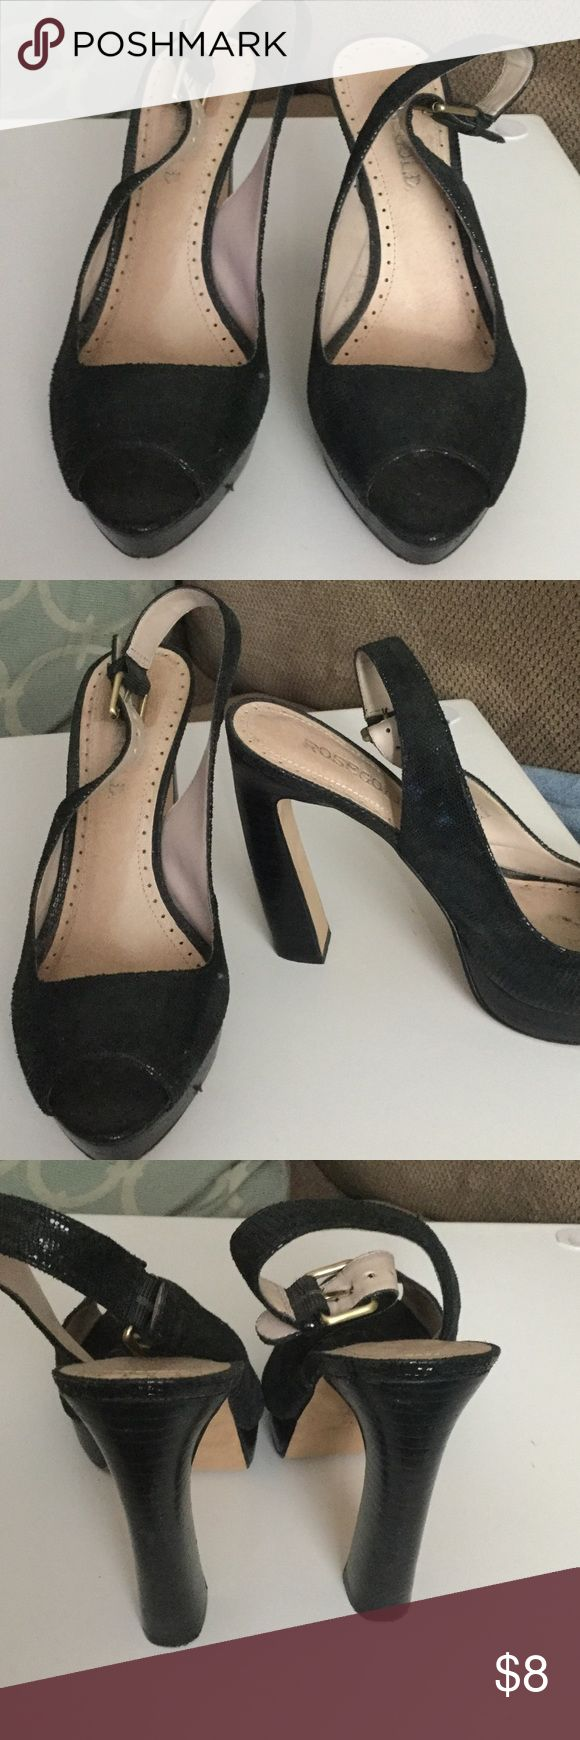 Rose gold Peep toe platform Nadia black 38 Only wore the shoes a couple of times very professional looking comfortable true to size. Leathe Rosegold Shoes Platforms